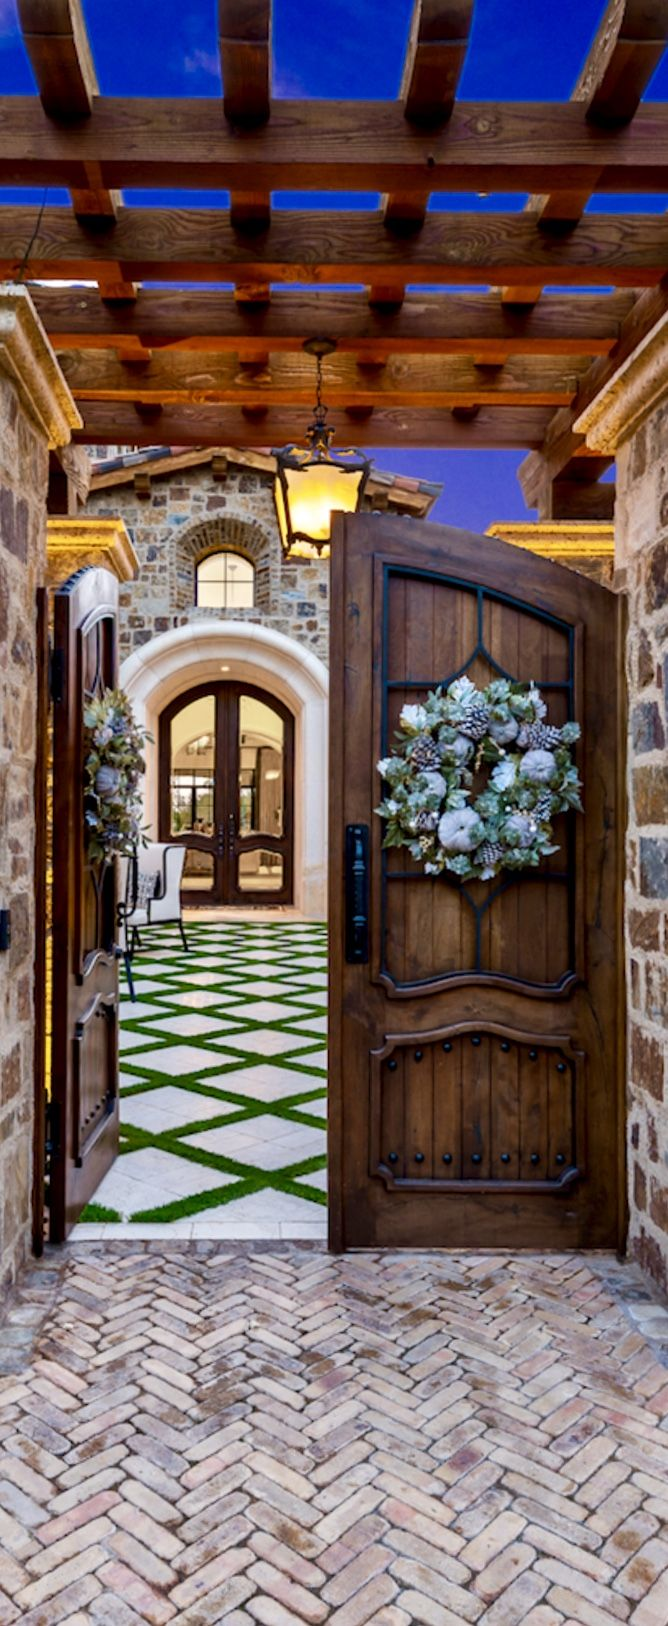 Fratantoni Luxury Estates Amazing I love this entrance to a courtyard and then the entrance to the home.